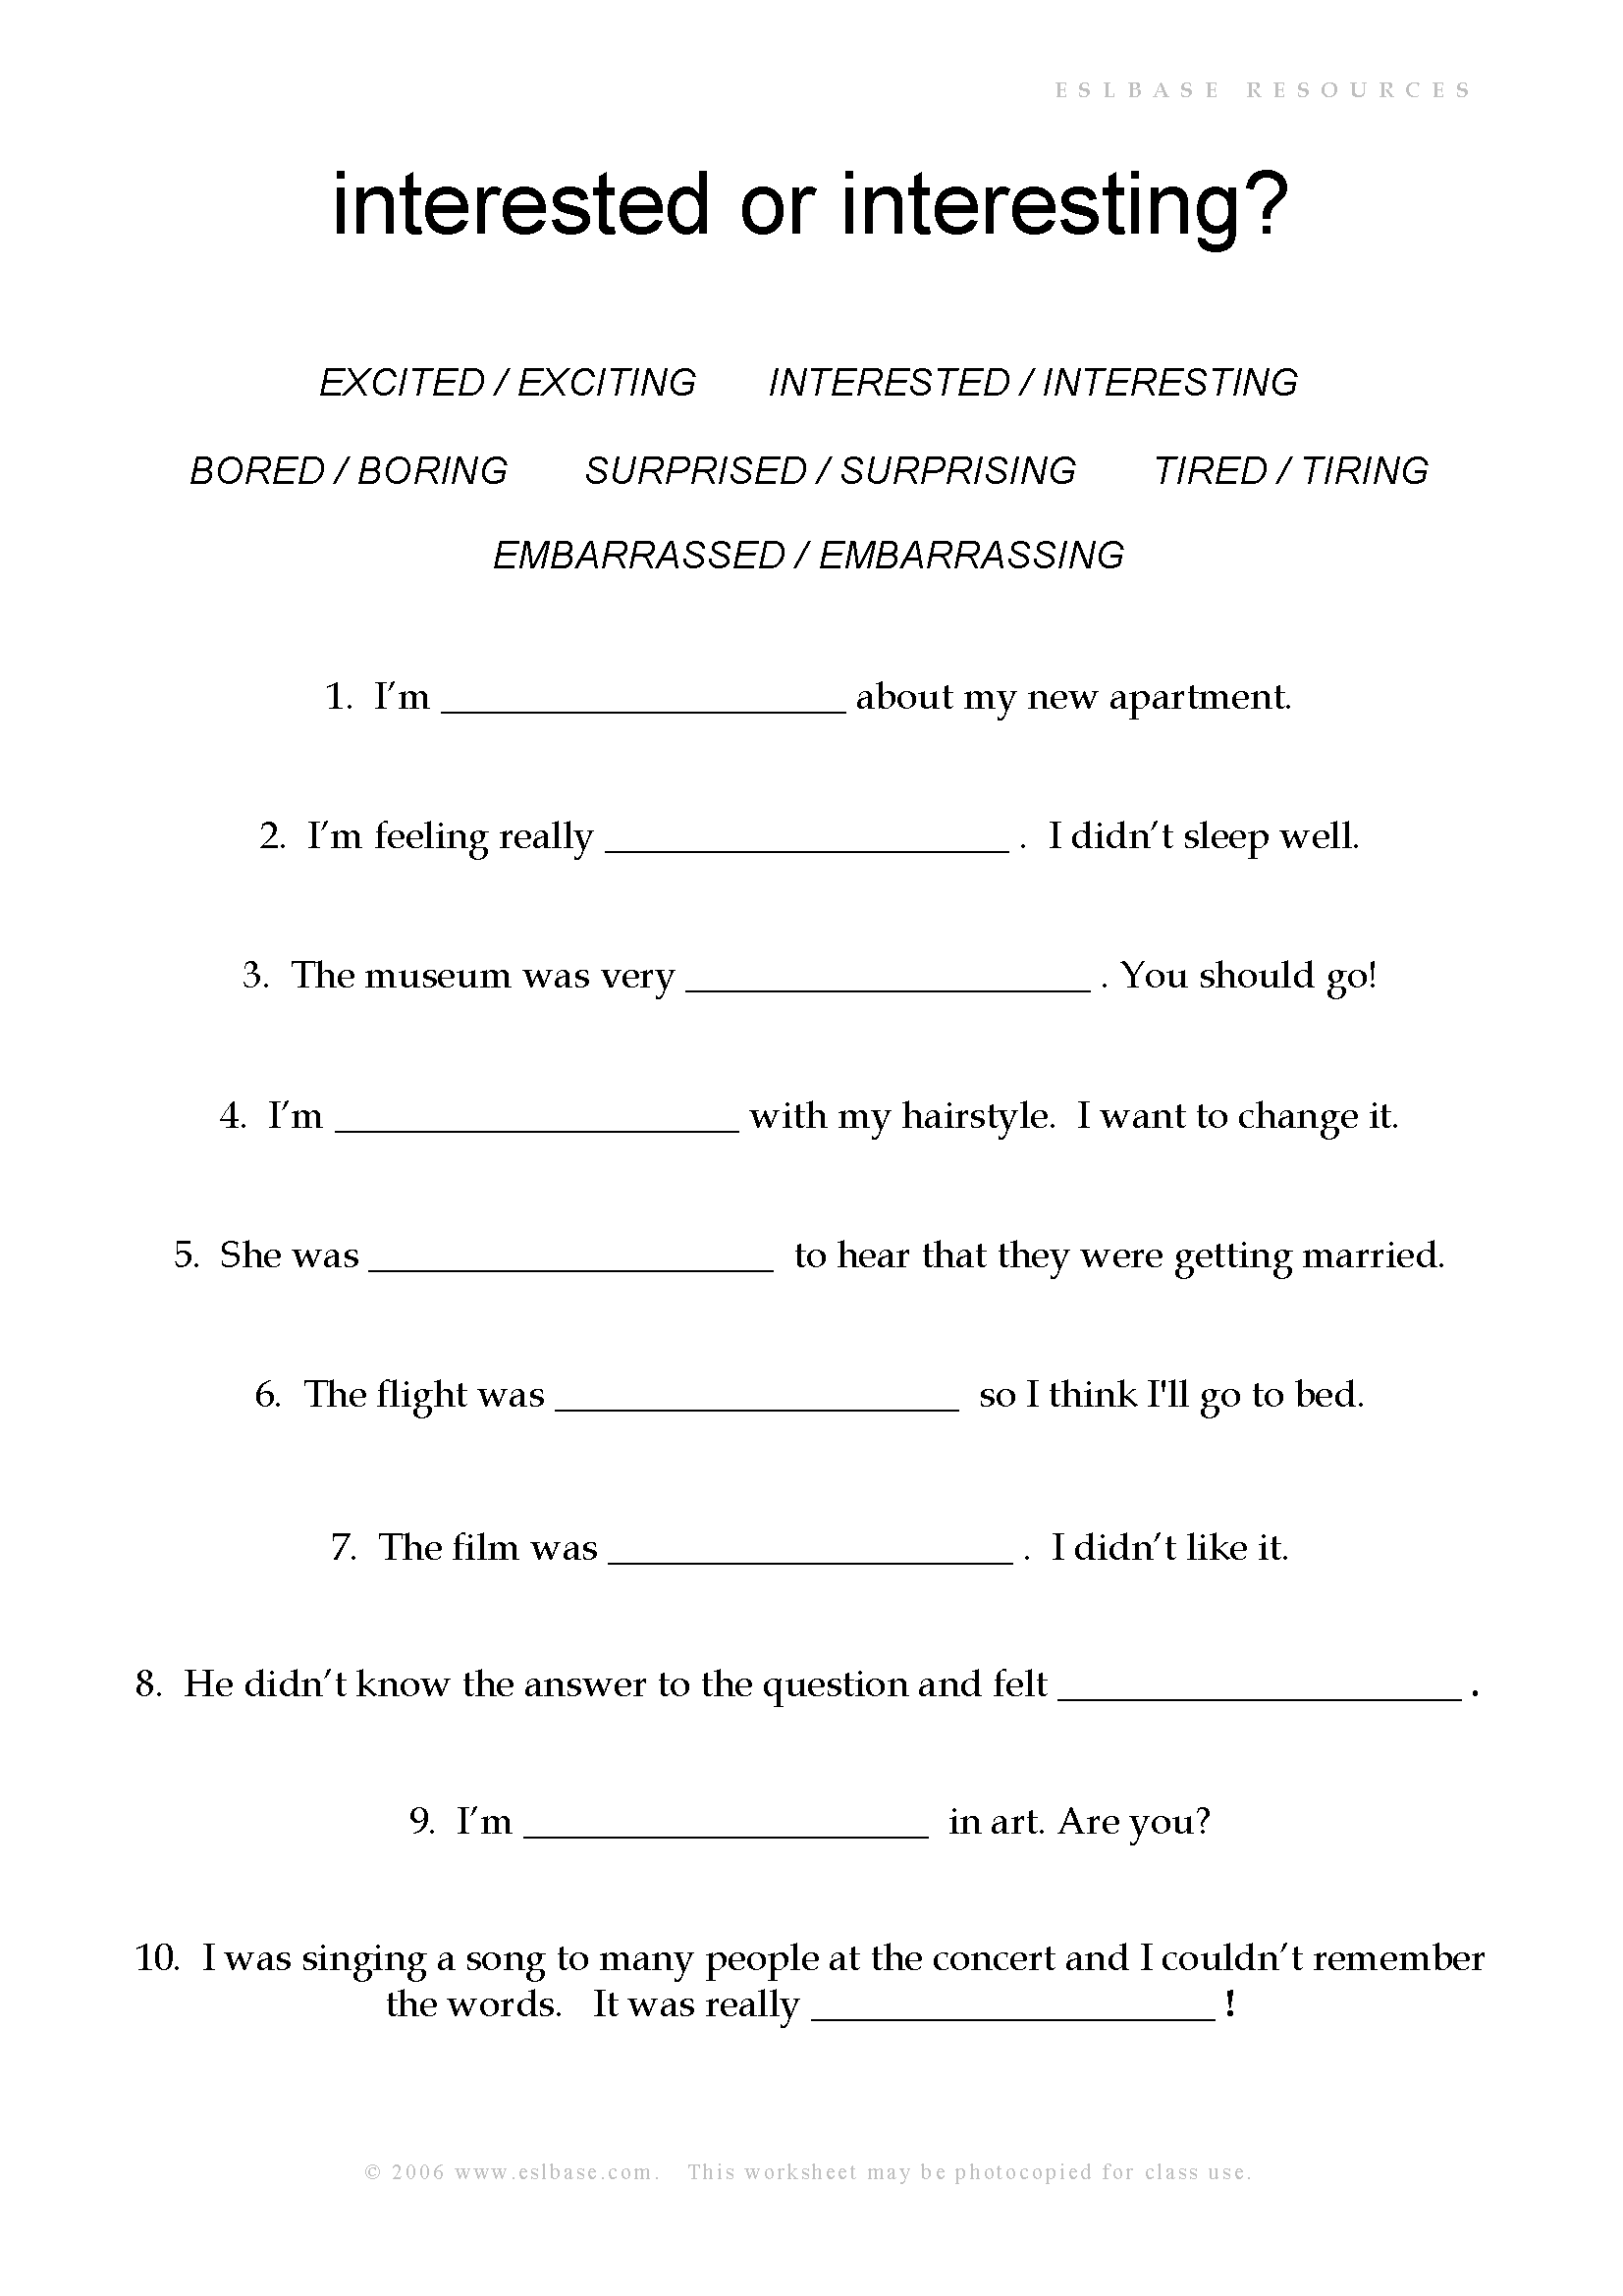 Worksheets Esol Worksheets esl worksheets adjectives with ed or ing eslbase com worksheet to practise adjectives